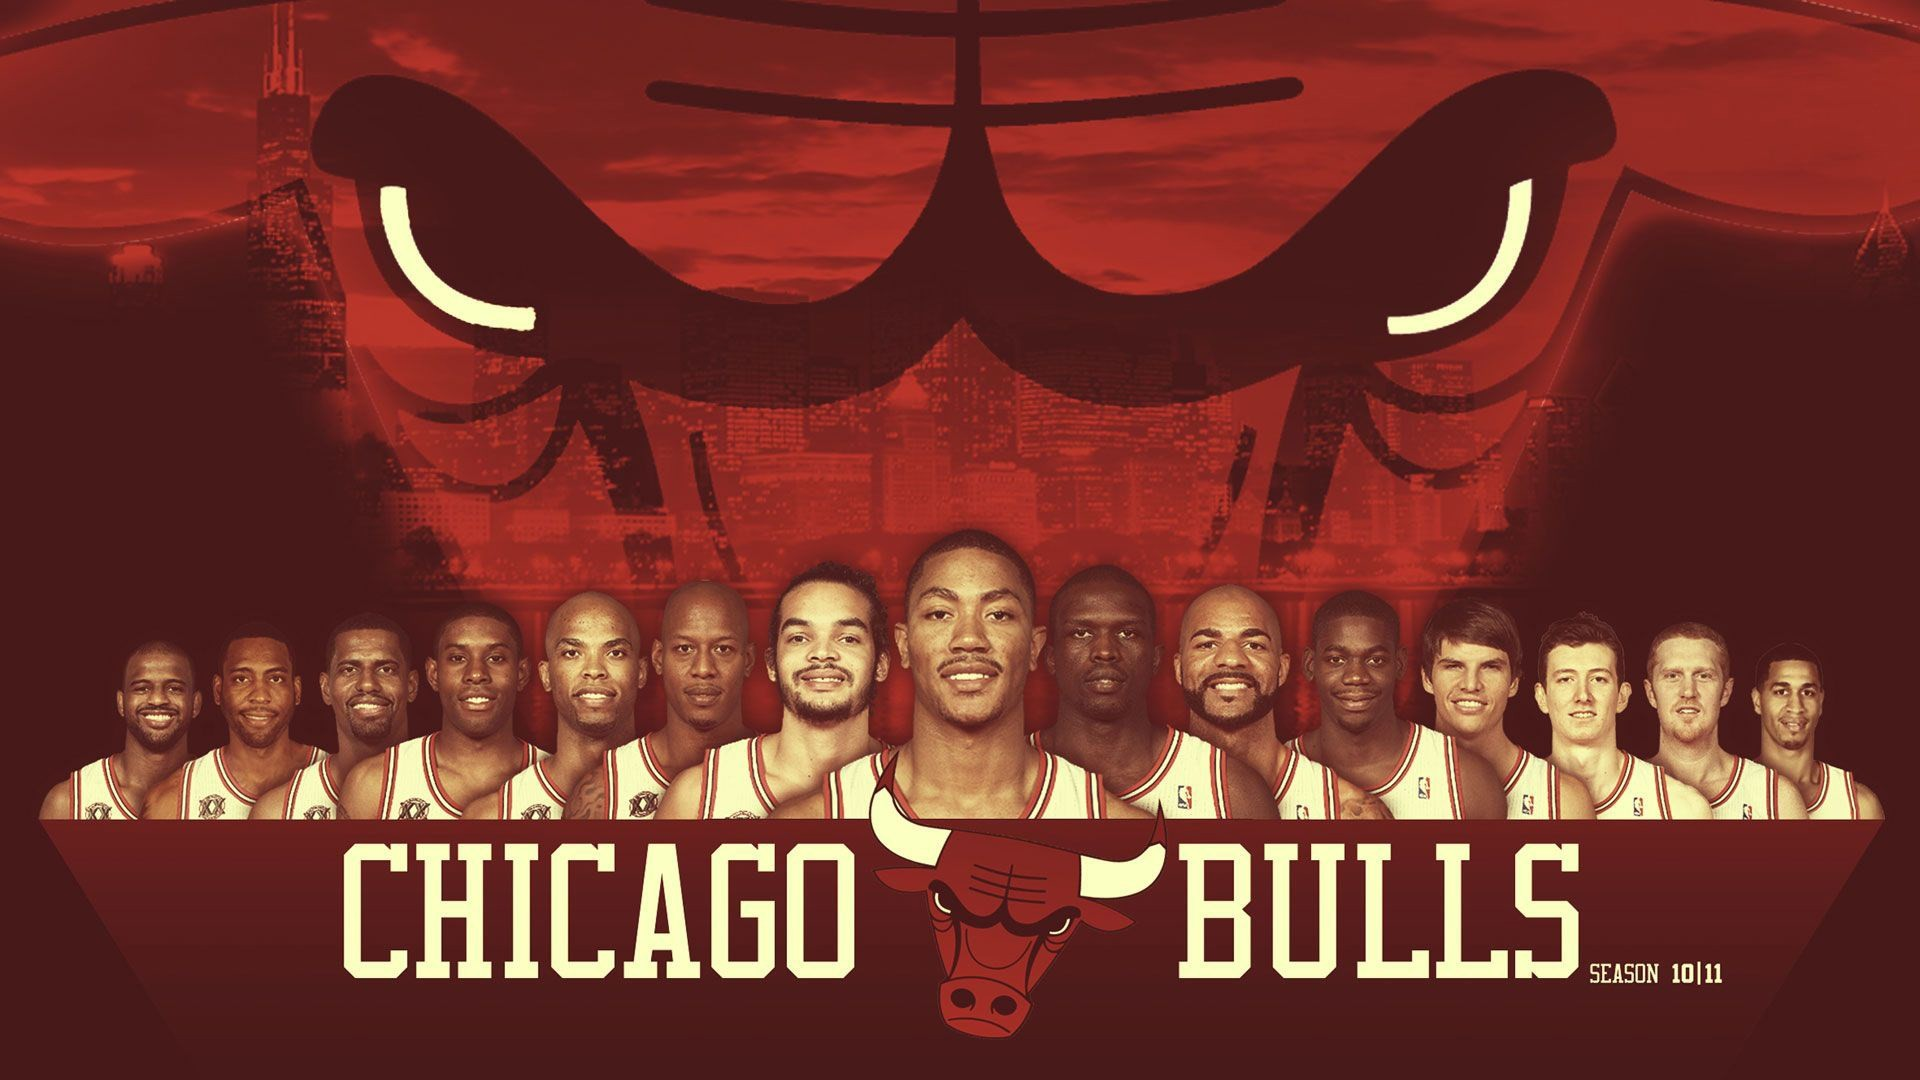 HD Widescreen Wallpapers – chicago bulls pic, (247 kB)